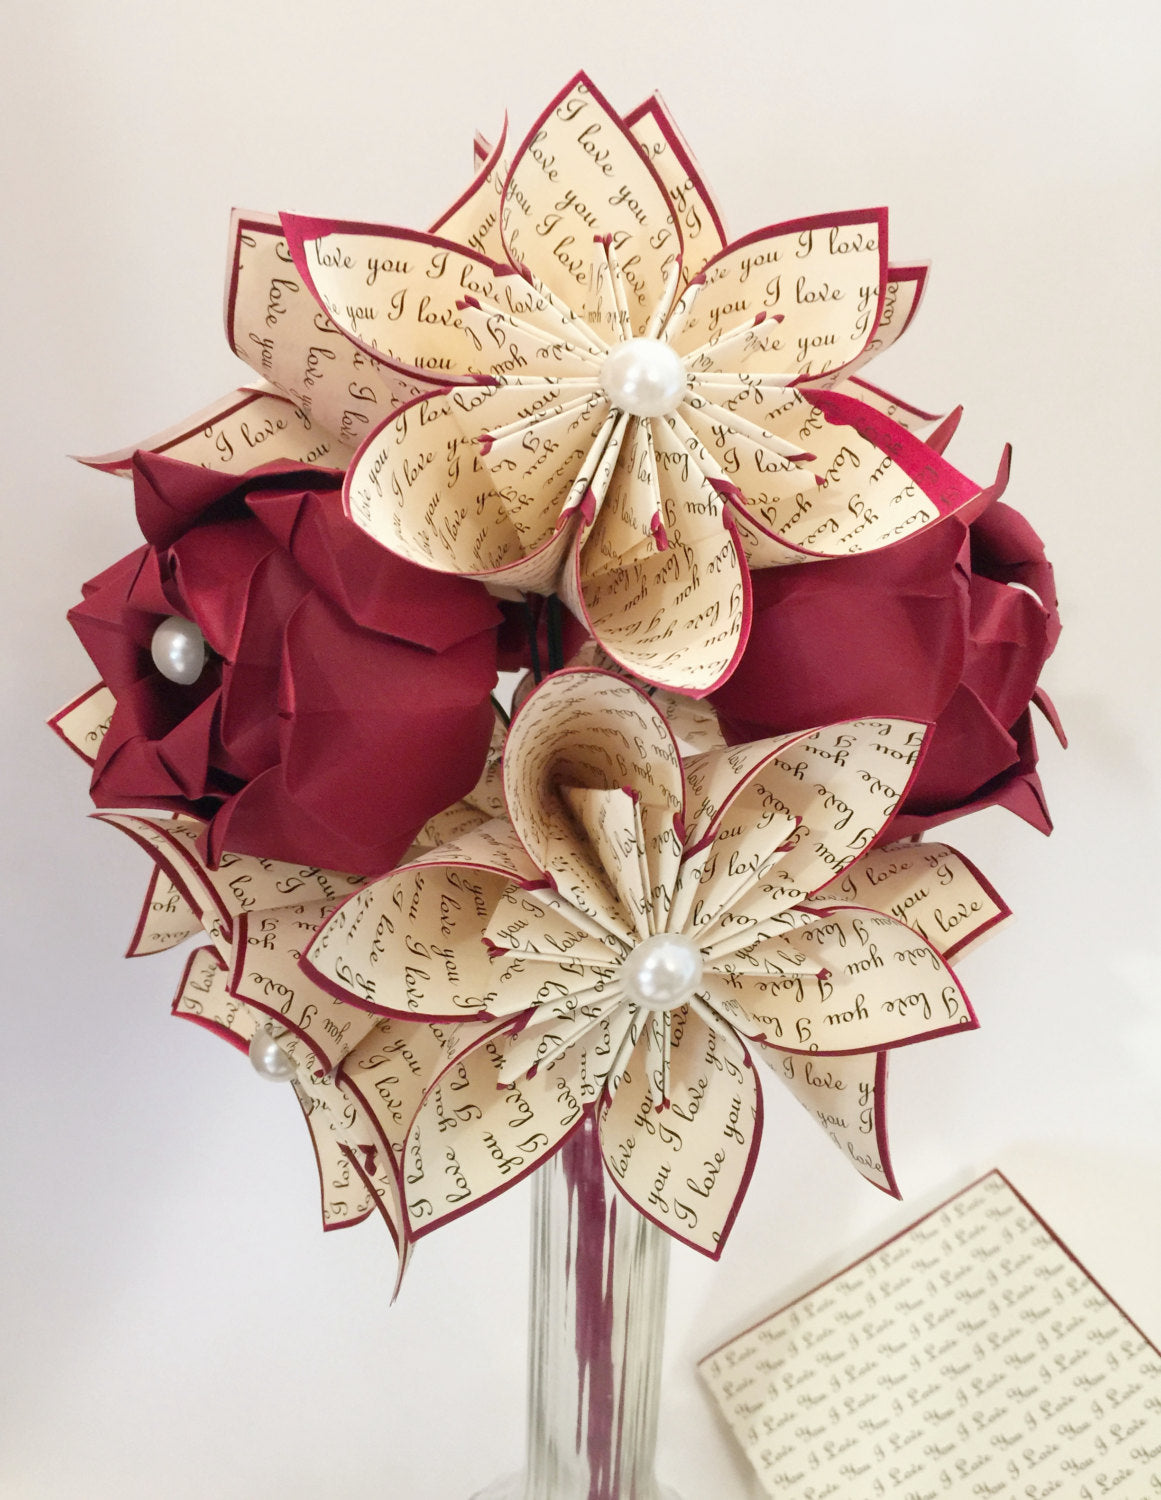 Custom Dozen Flowers with Red Roses- Vase & Card Included, Your names and anniversary date, one of a kind origami gift